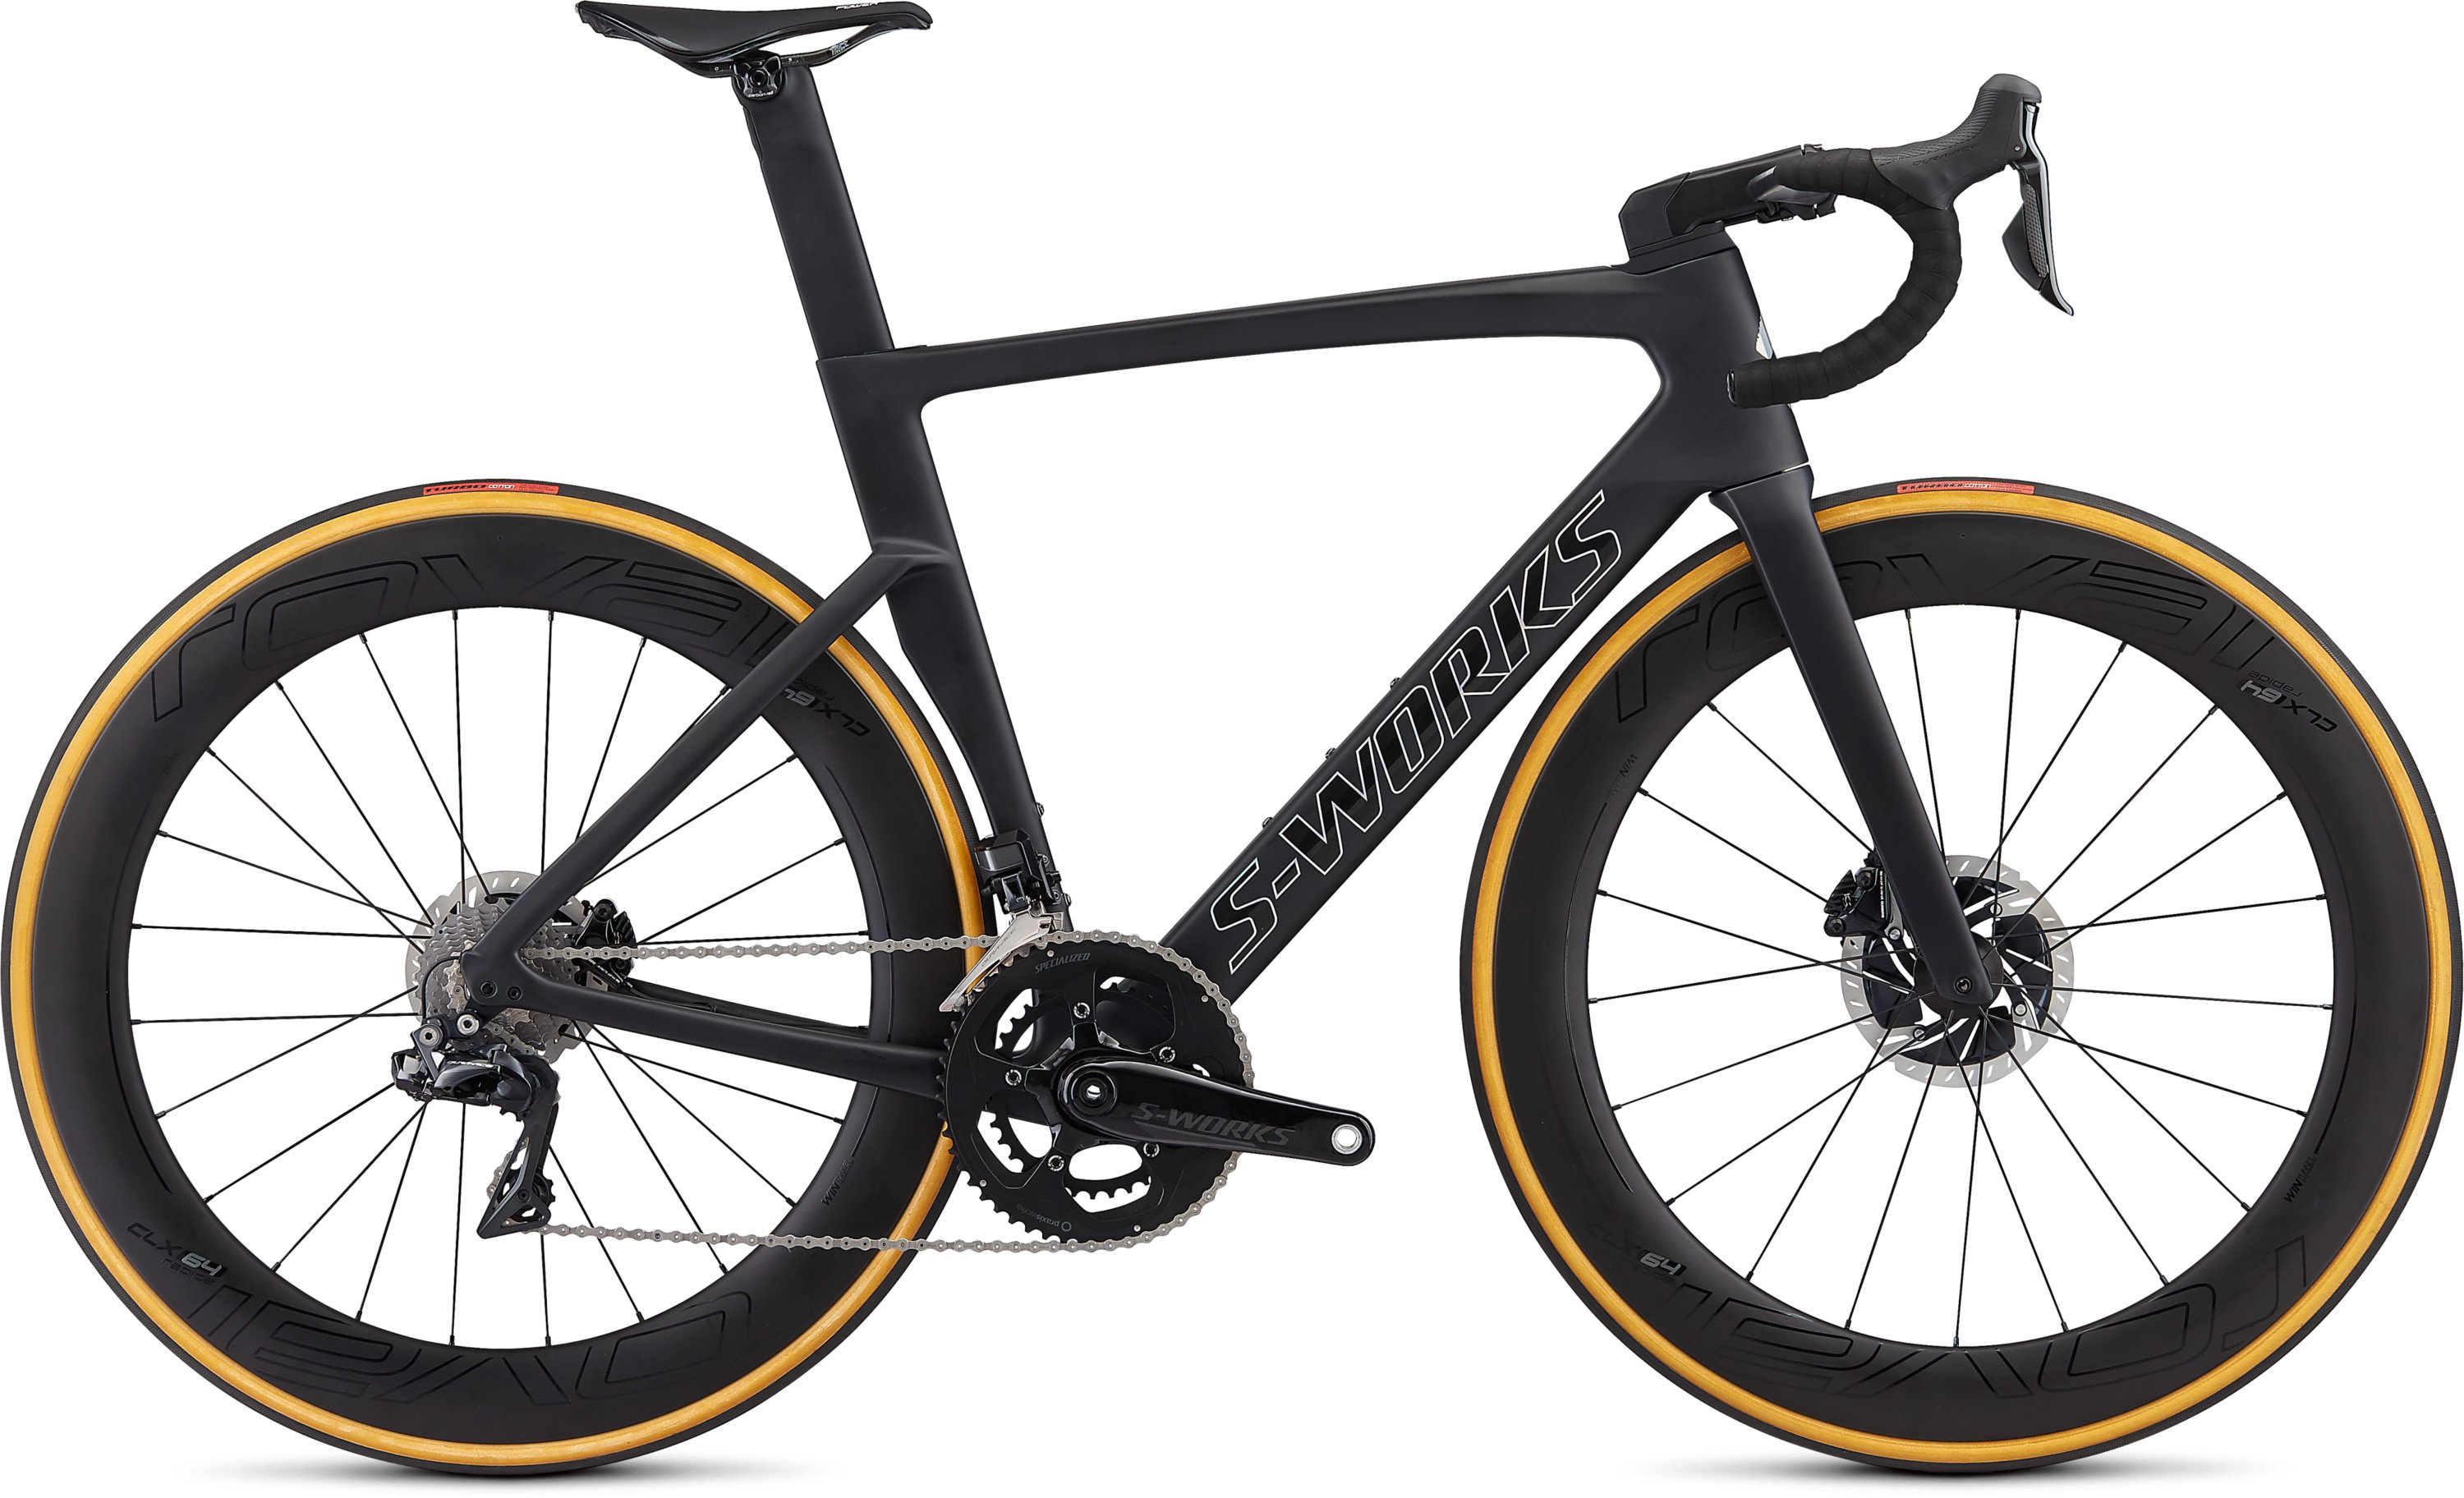 2019 Specialized S-Works Venge - Specialized Concept Store